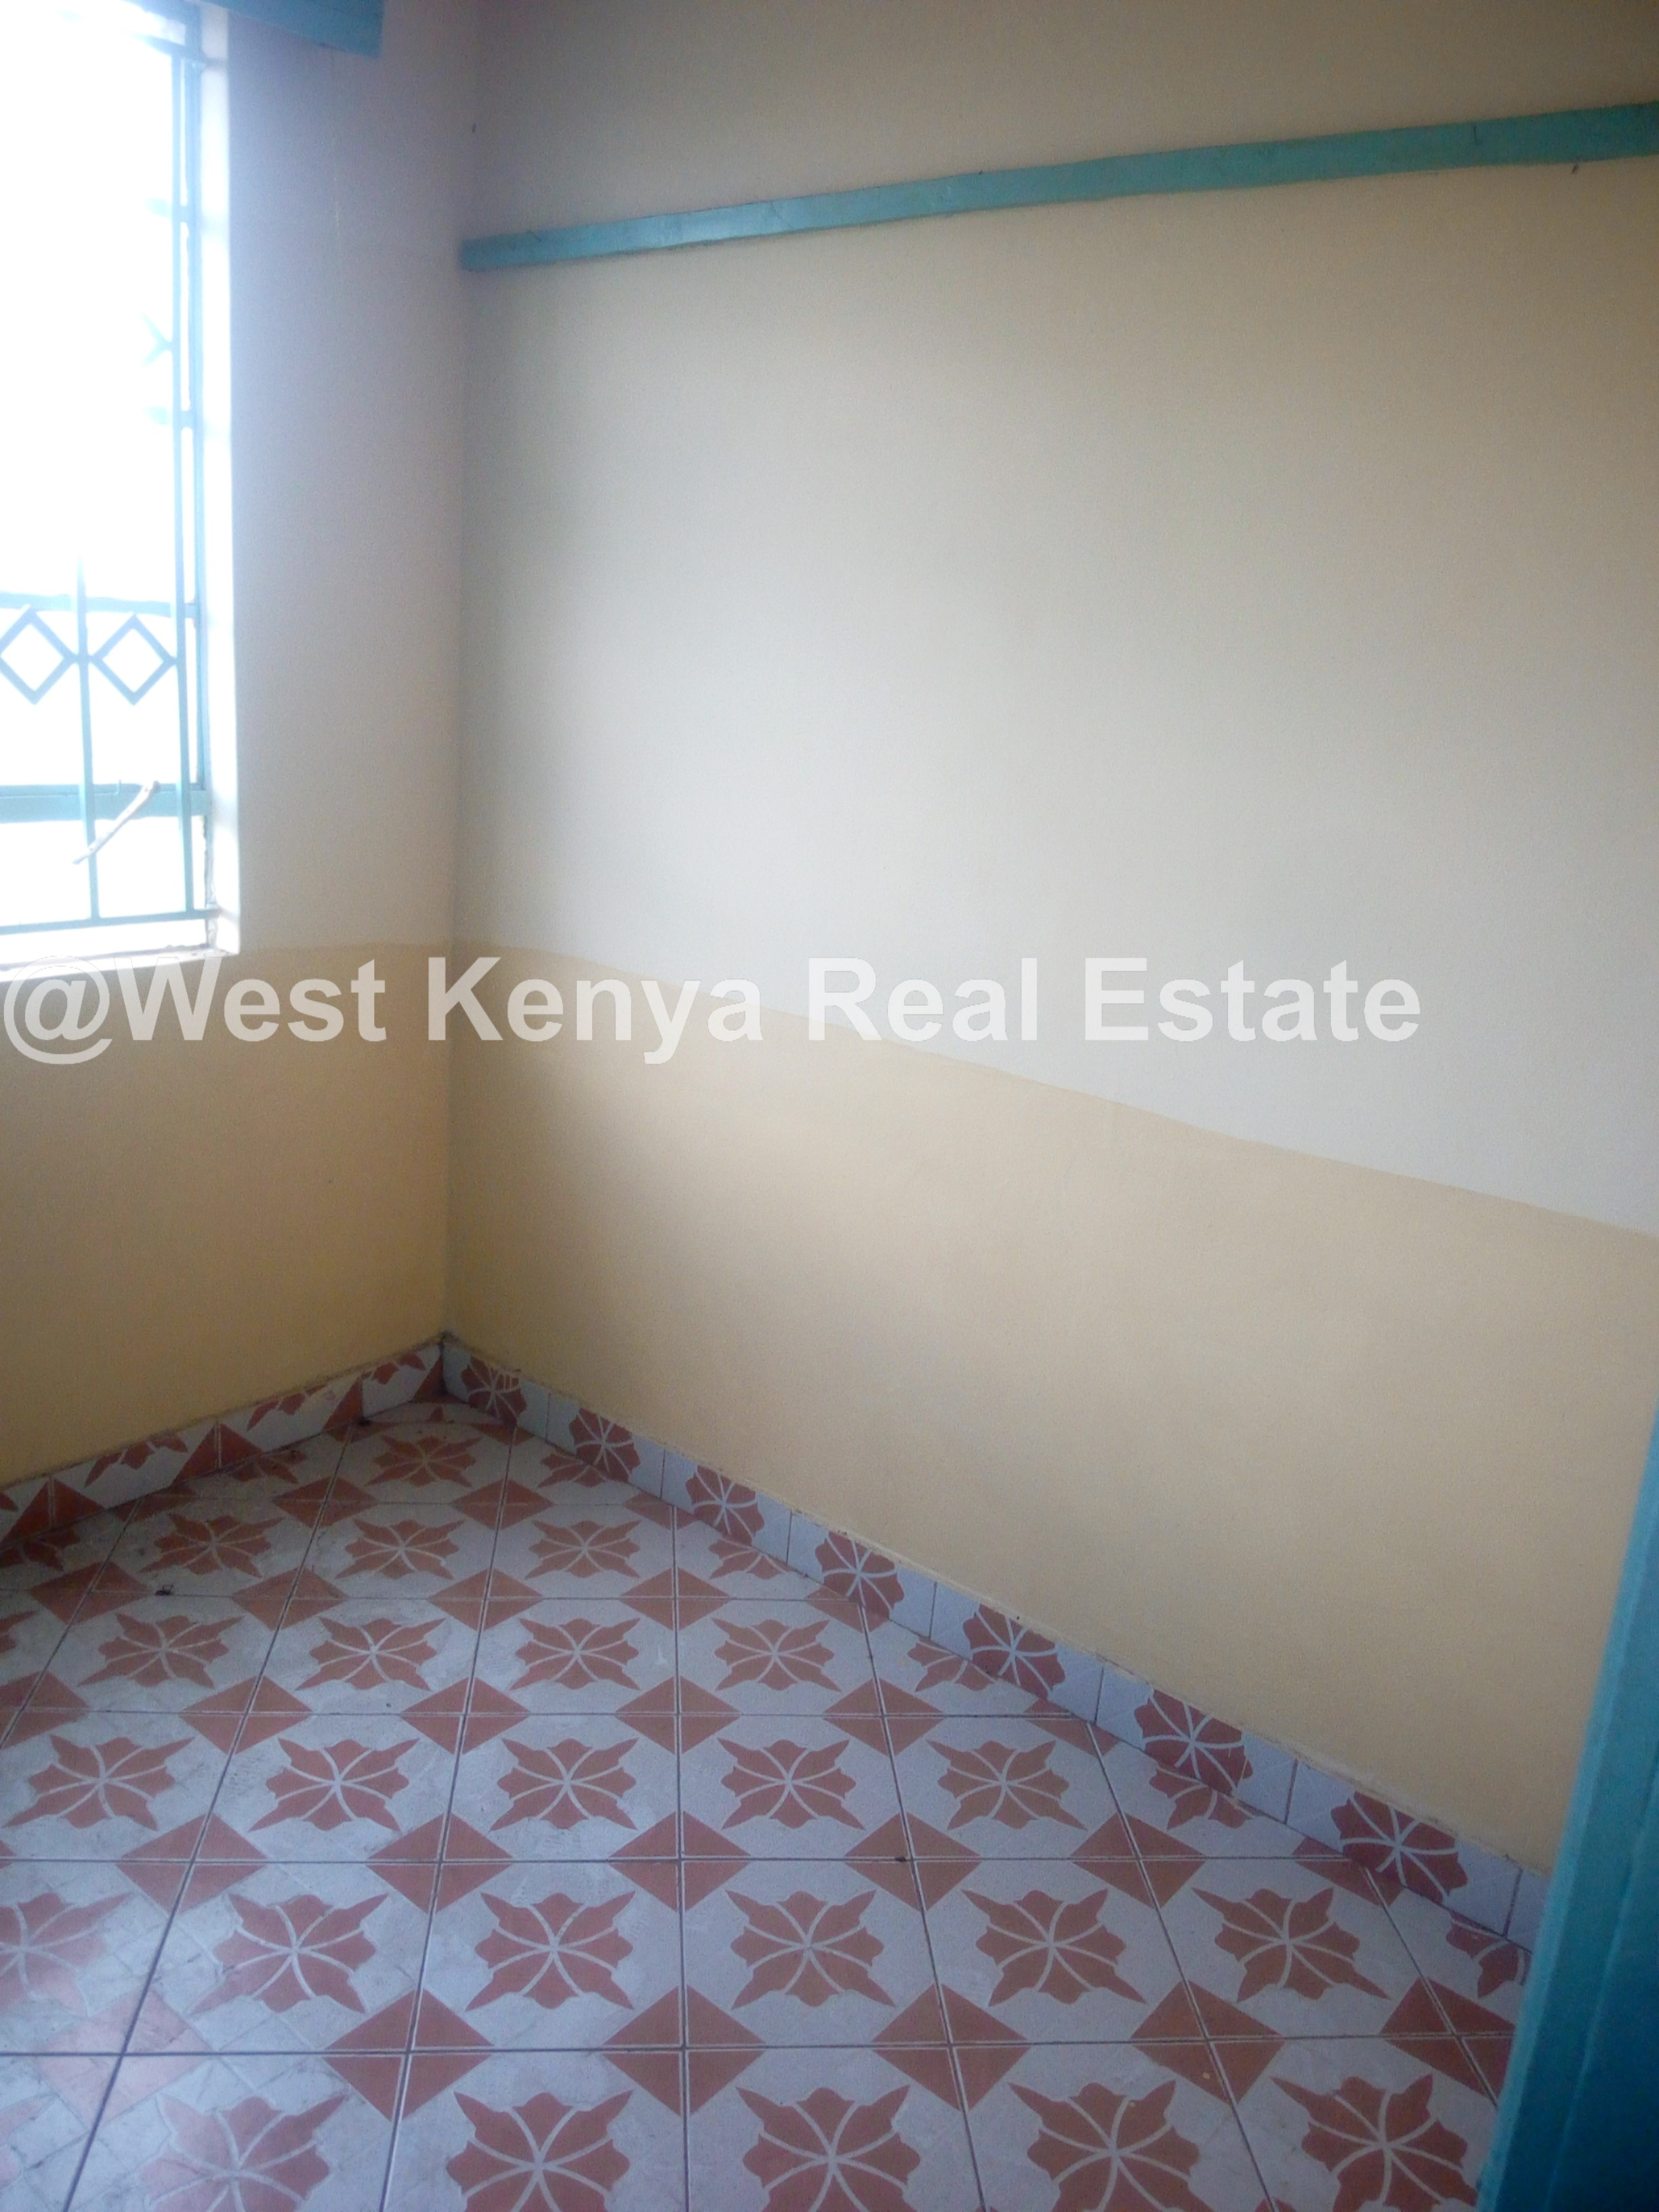 3 Bedroom house Obuolo Mamboleo Kisumu 3